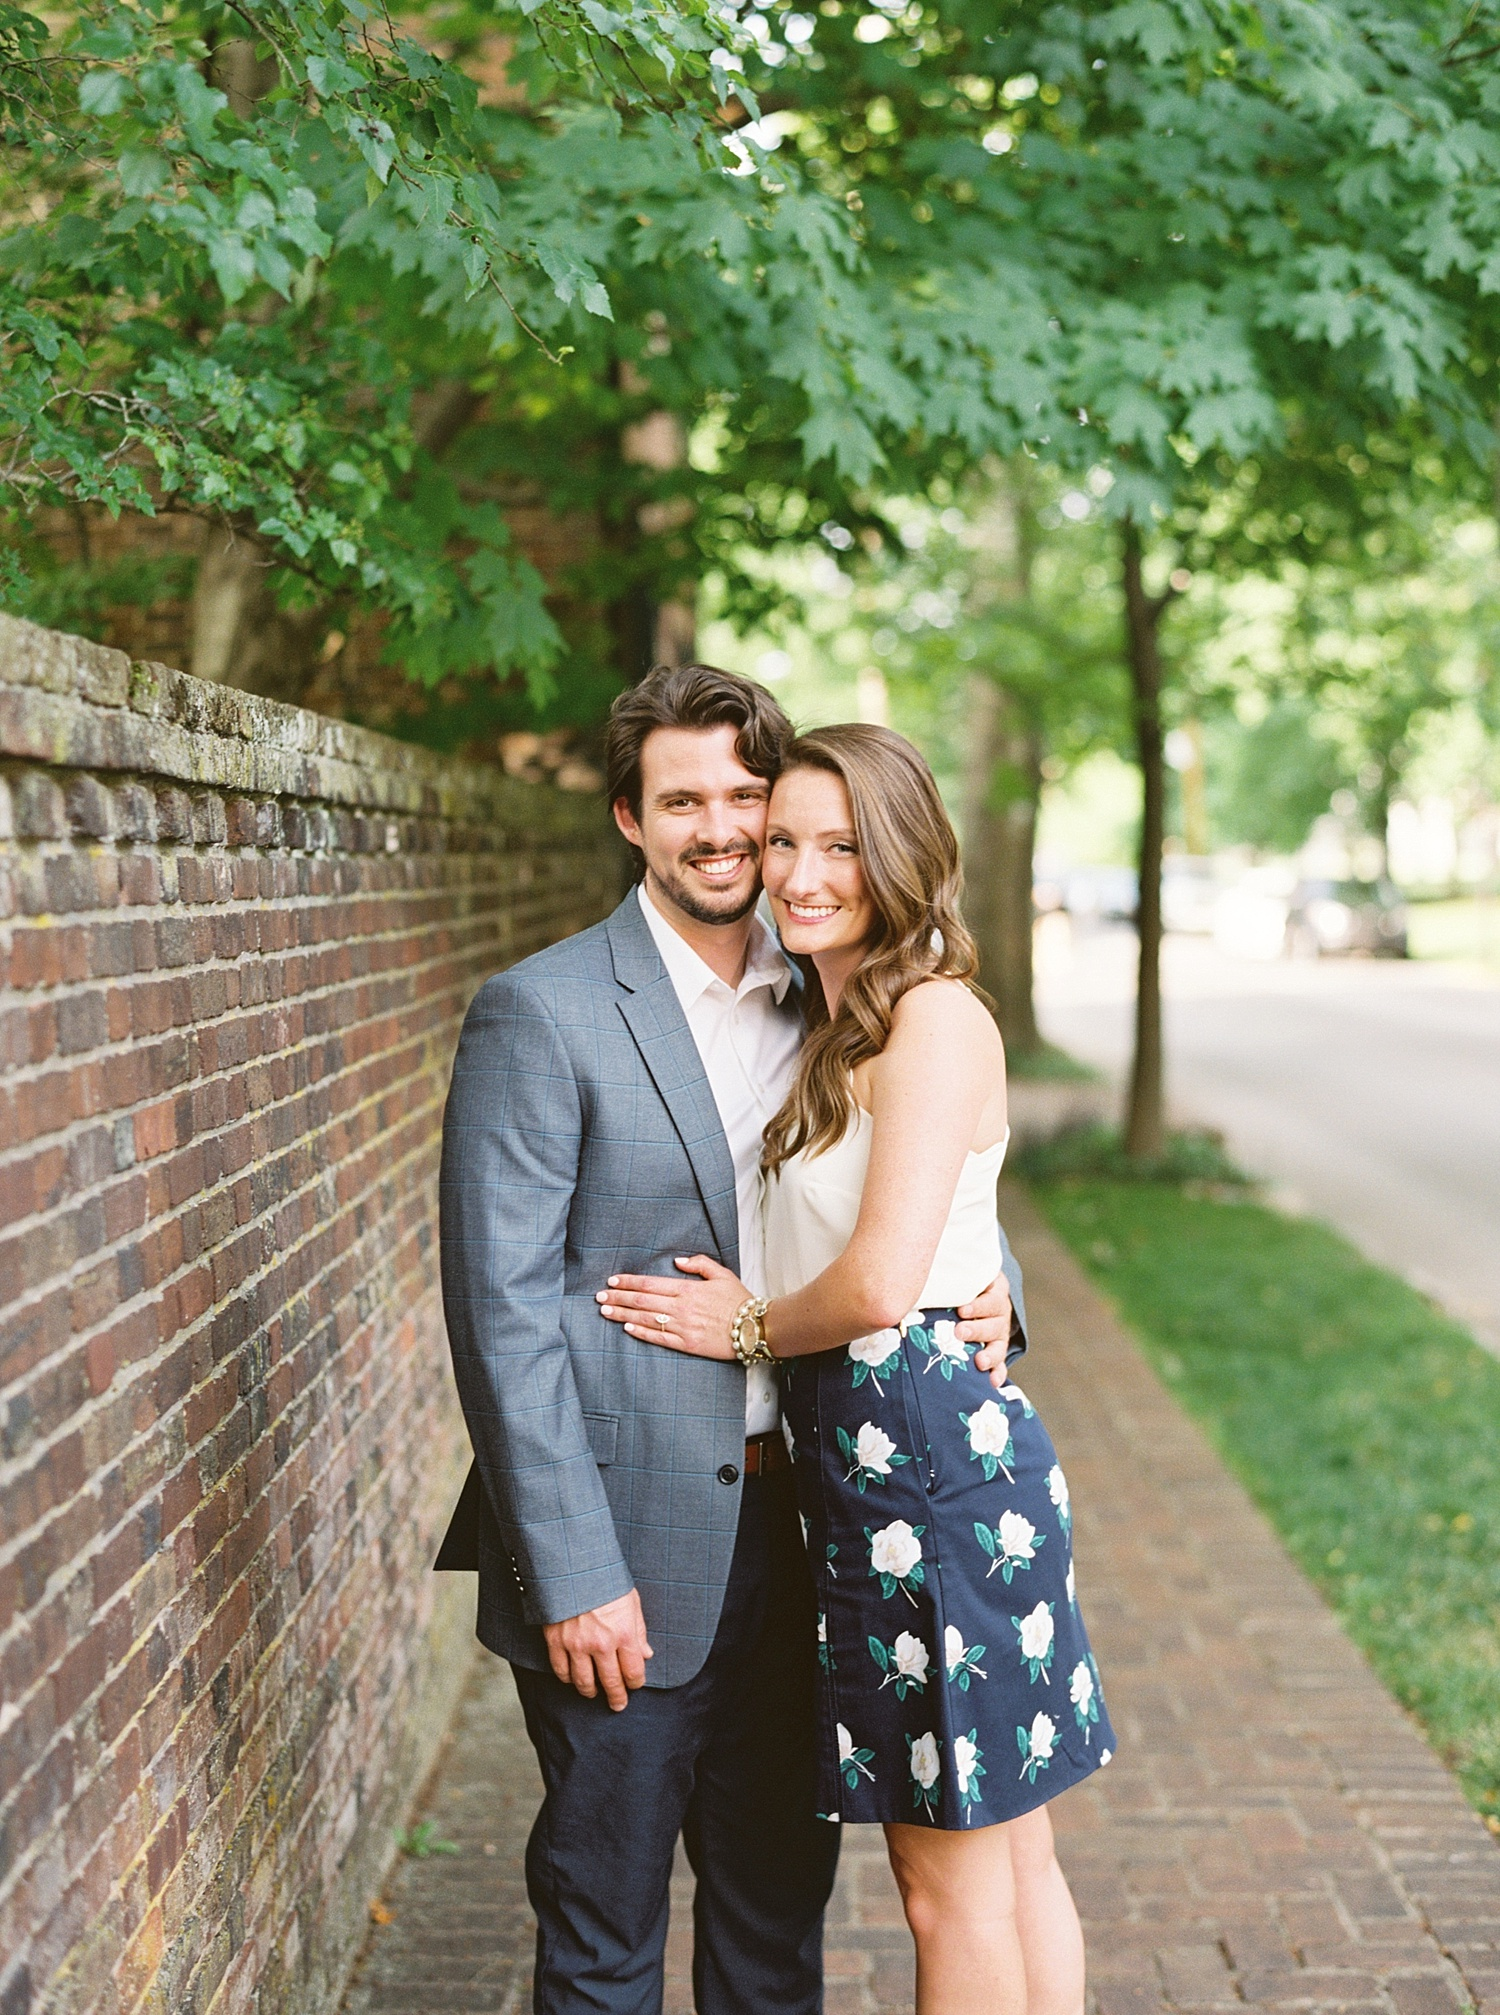 Downtown Lexington Engagement Session Talon Winery Picnic Engagement Session Gal Meets Glam Anthropologie Dress Laura Bodnar Photography Lexington Wedding Photographer Film Photography_0006-1.jpg